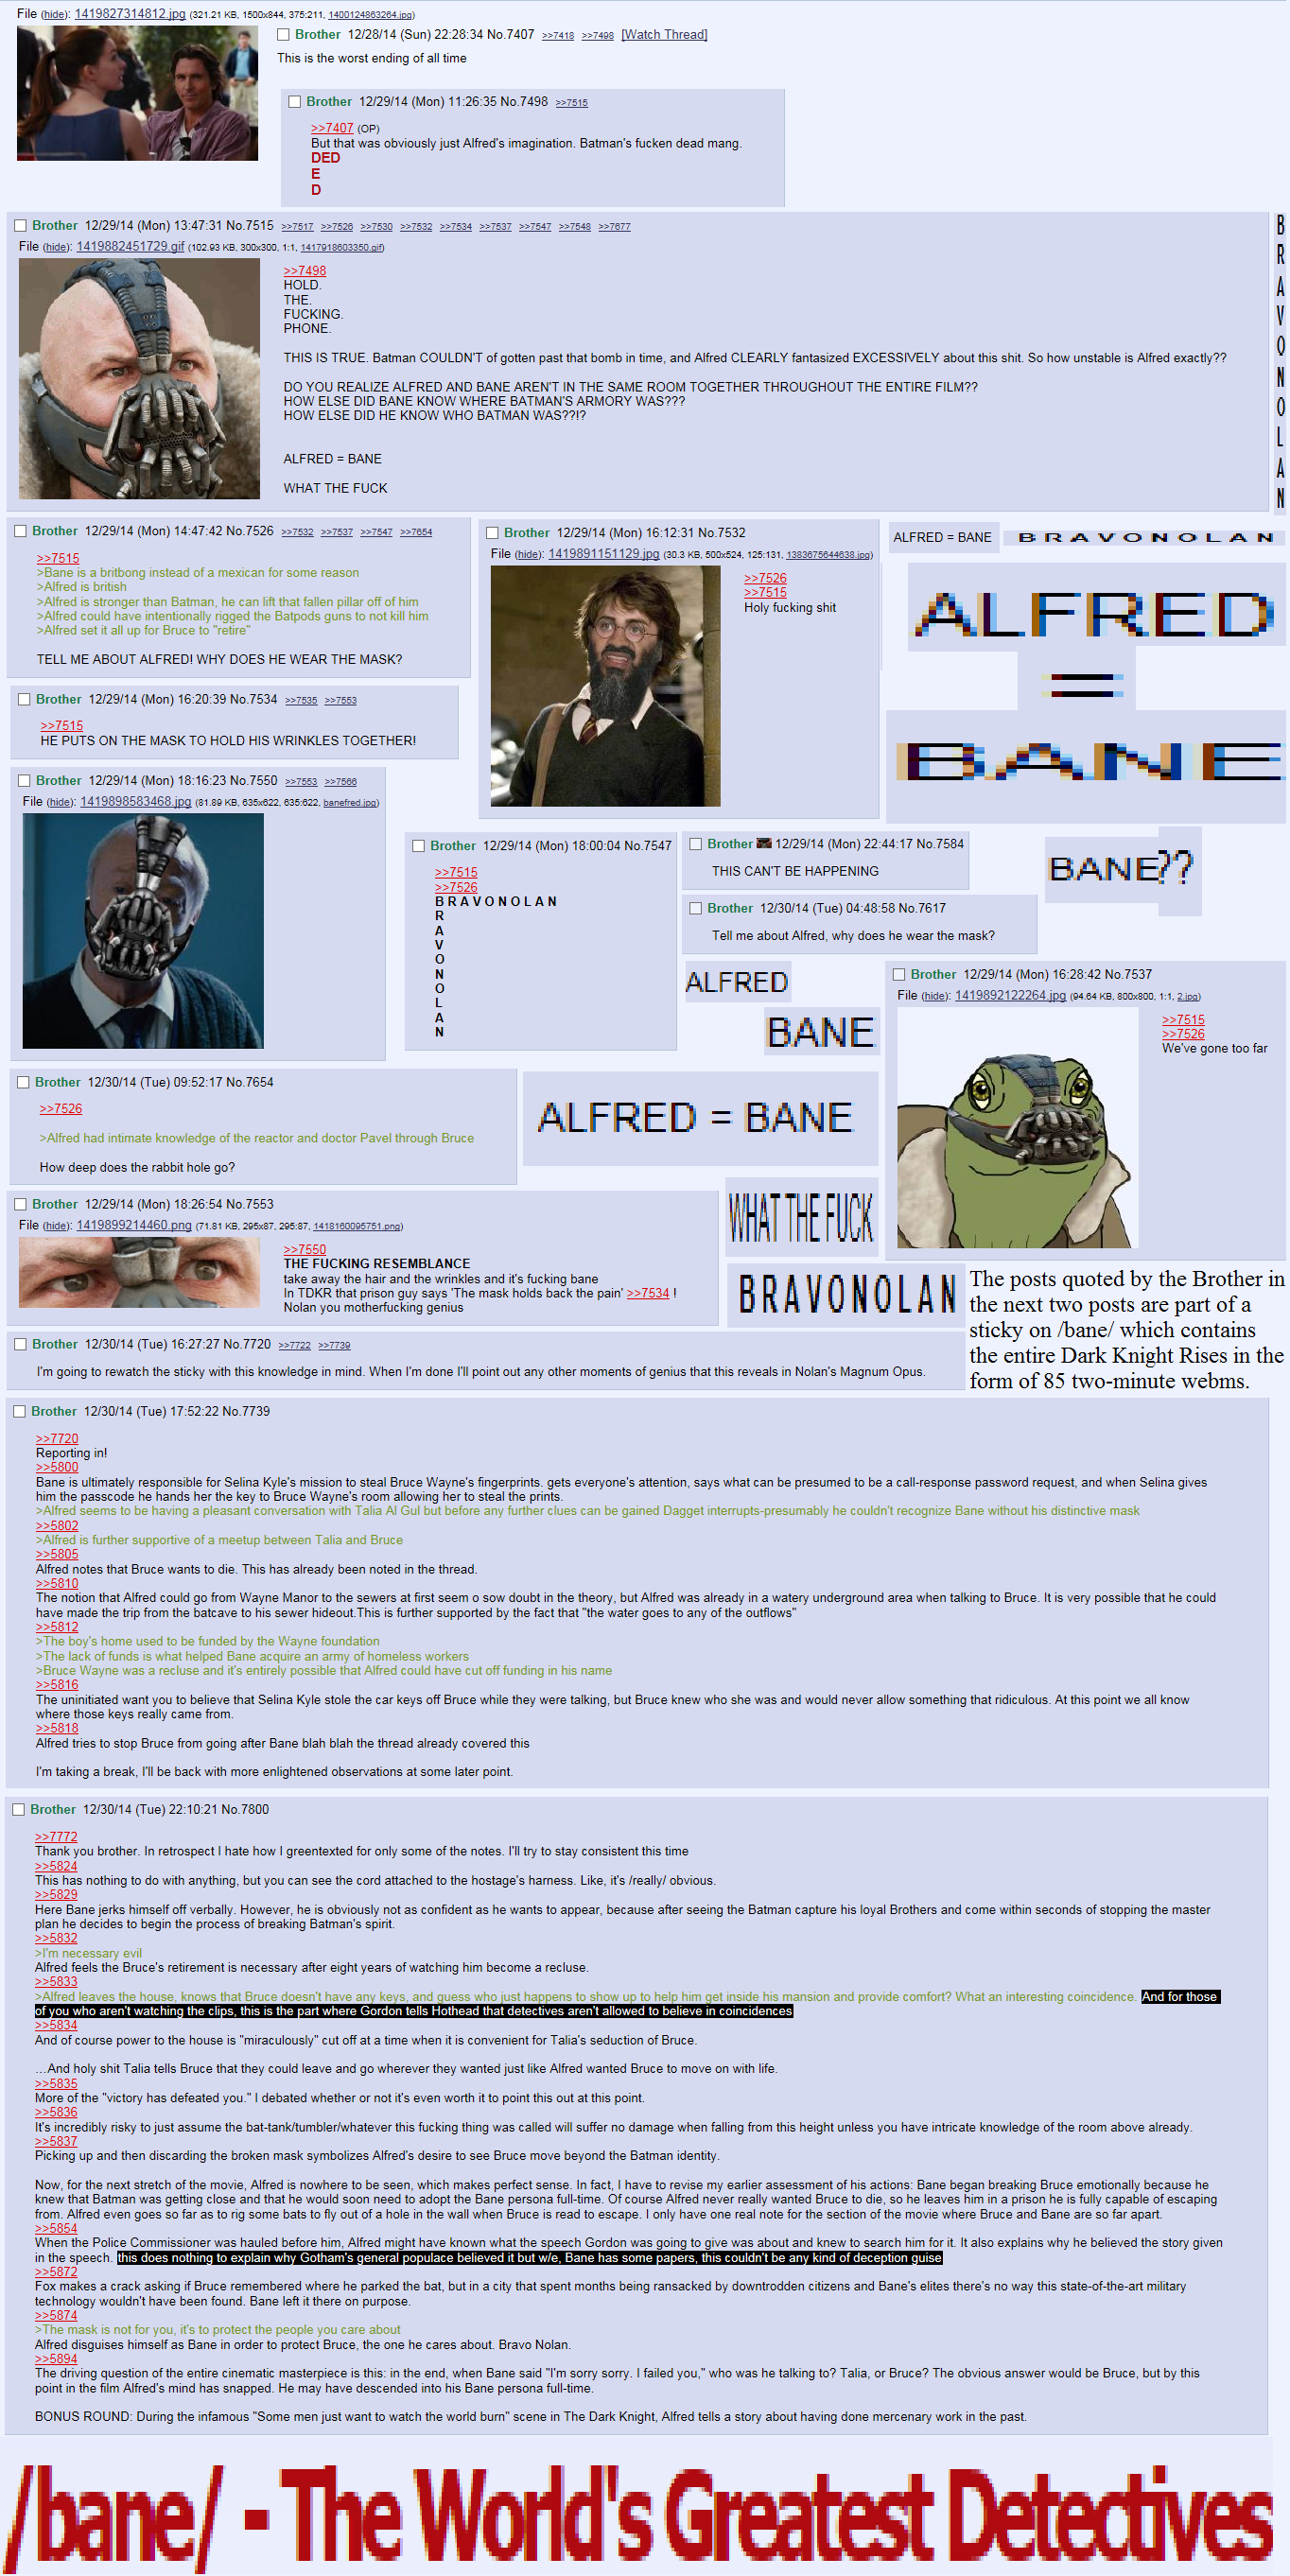 4Chan Torrent bane = alfred | baneposting | know your meme